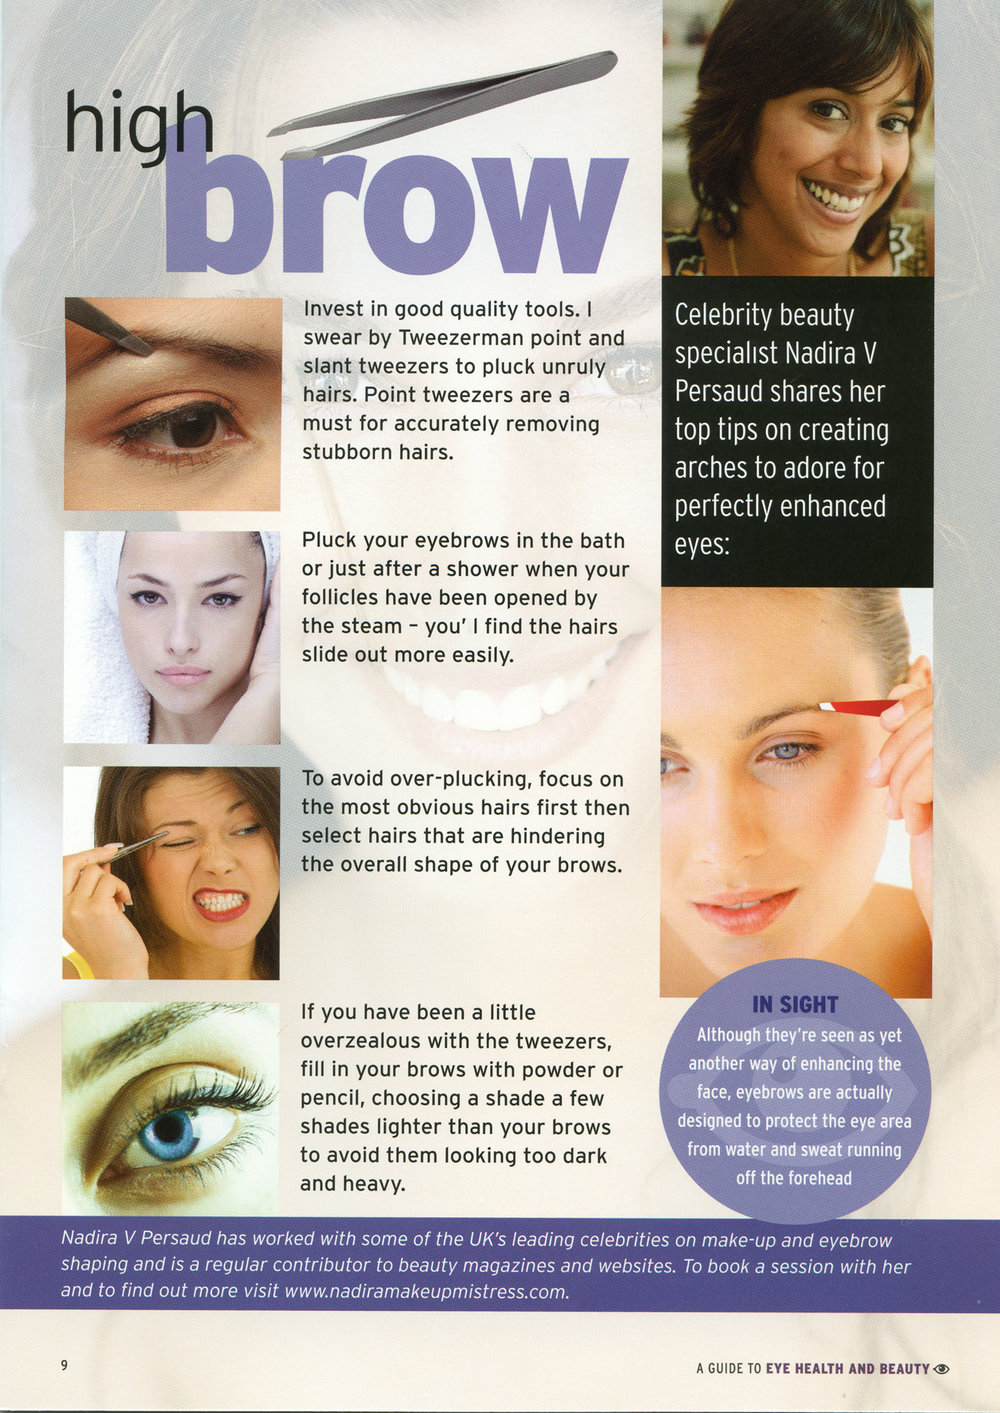 A Guide to Eye Health & Beauty